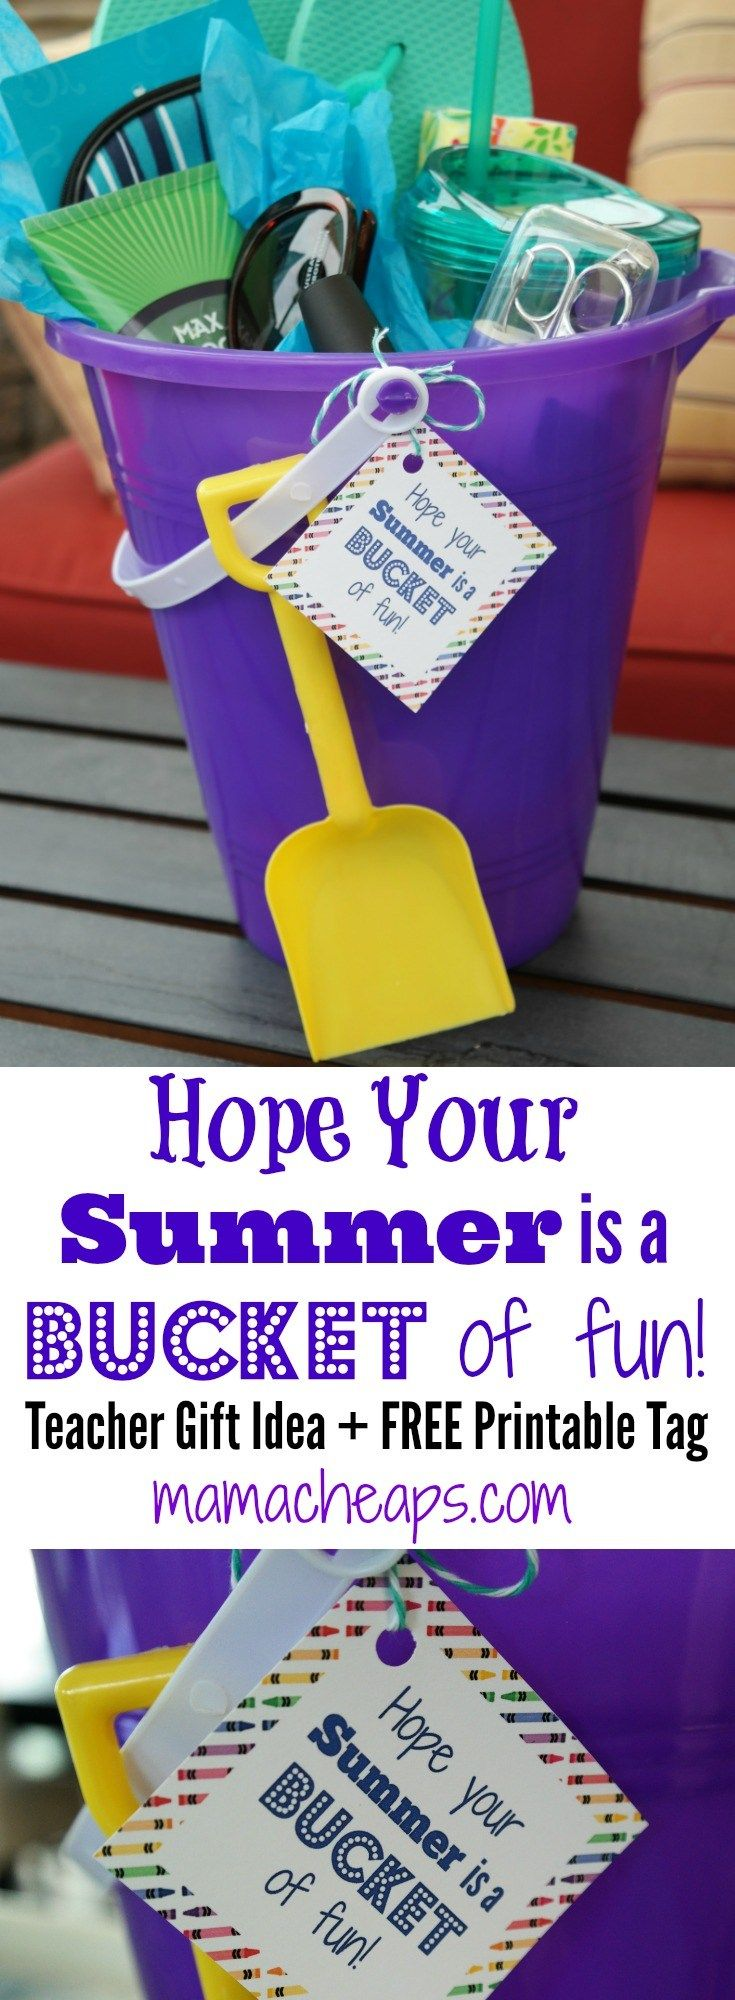 DIY Beach Bucket Teacher Gift